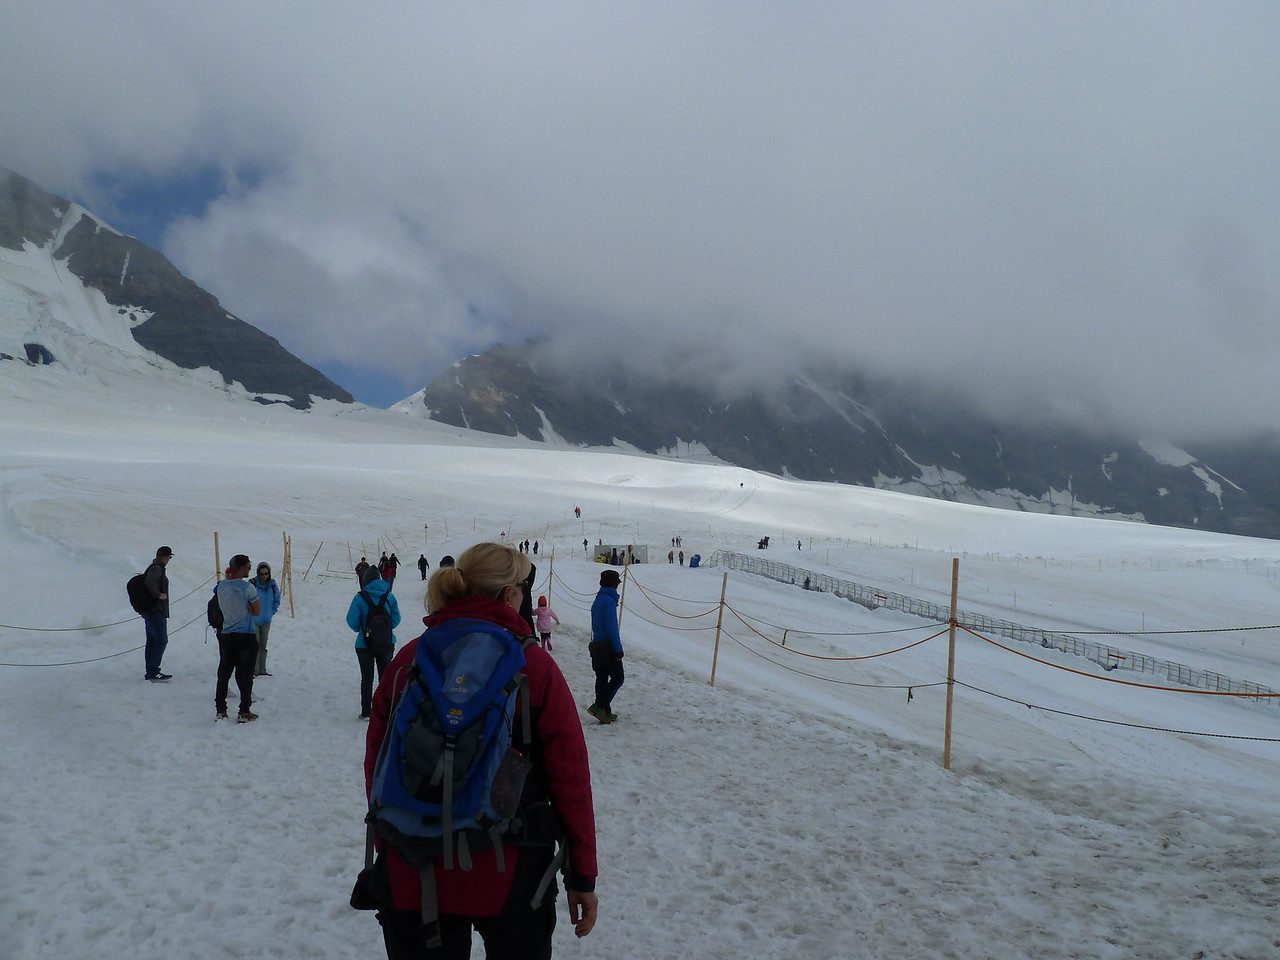 Hiking out over the glacier from the Jungfraujoch to the Mönchsjoch Hut, a climbers' hut at the notch in the distance - about an hour's hike. Again, we are at about 3400 m going to 3600 m (11,300 ft to 11,800 ft). And yes, one certainly noticed the altitude!!